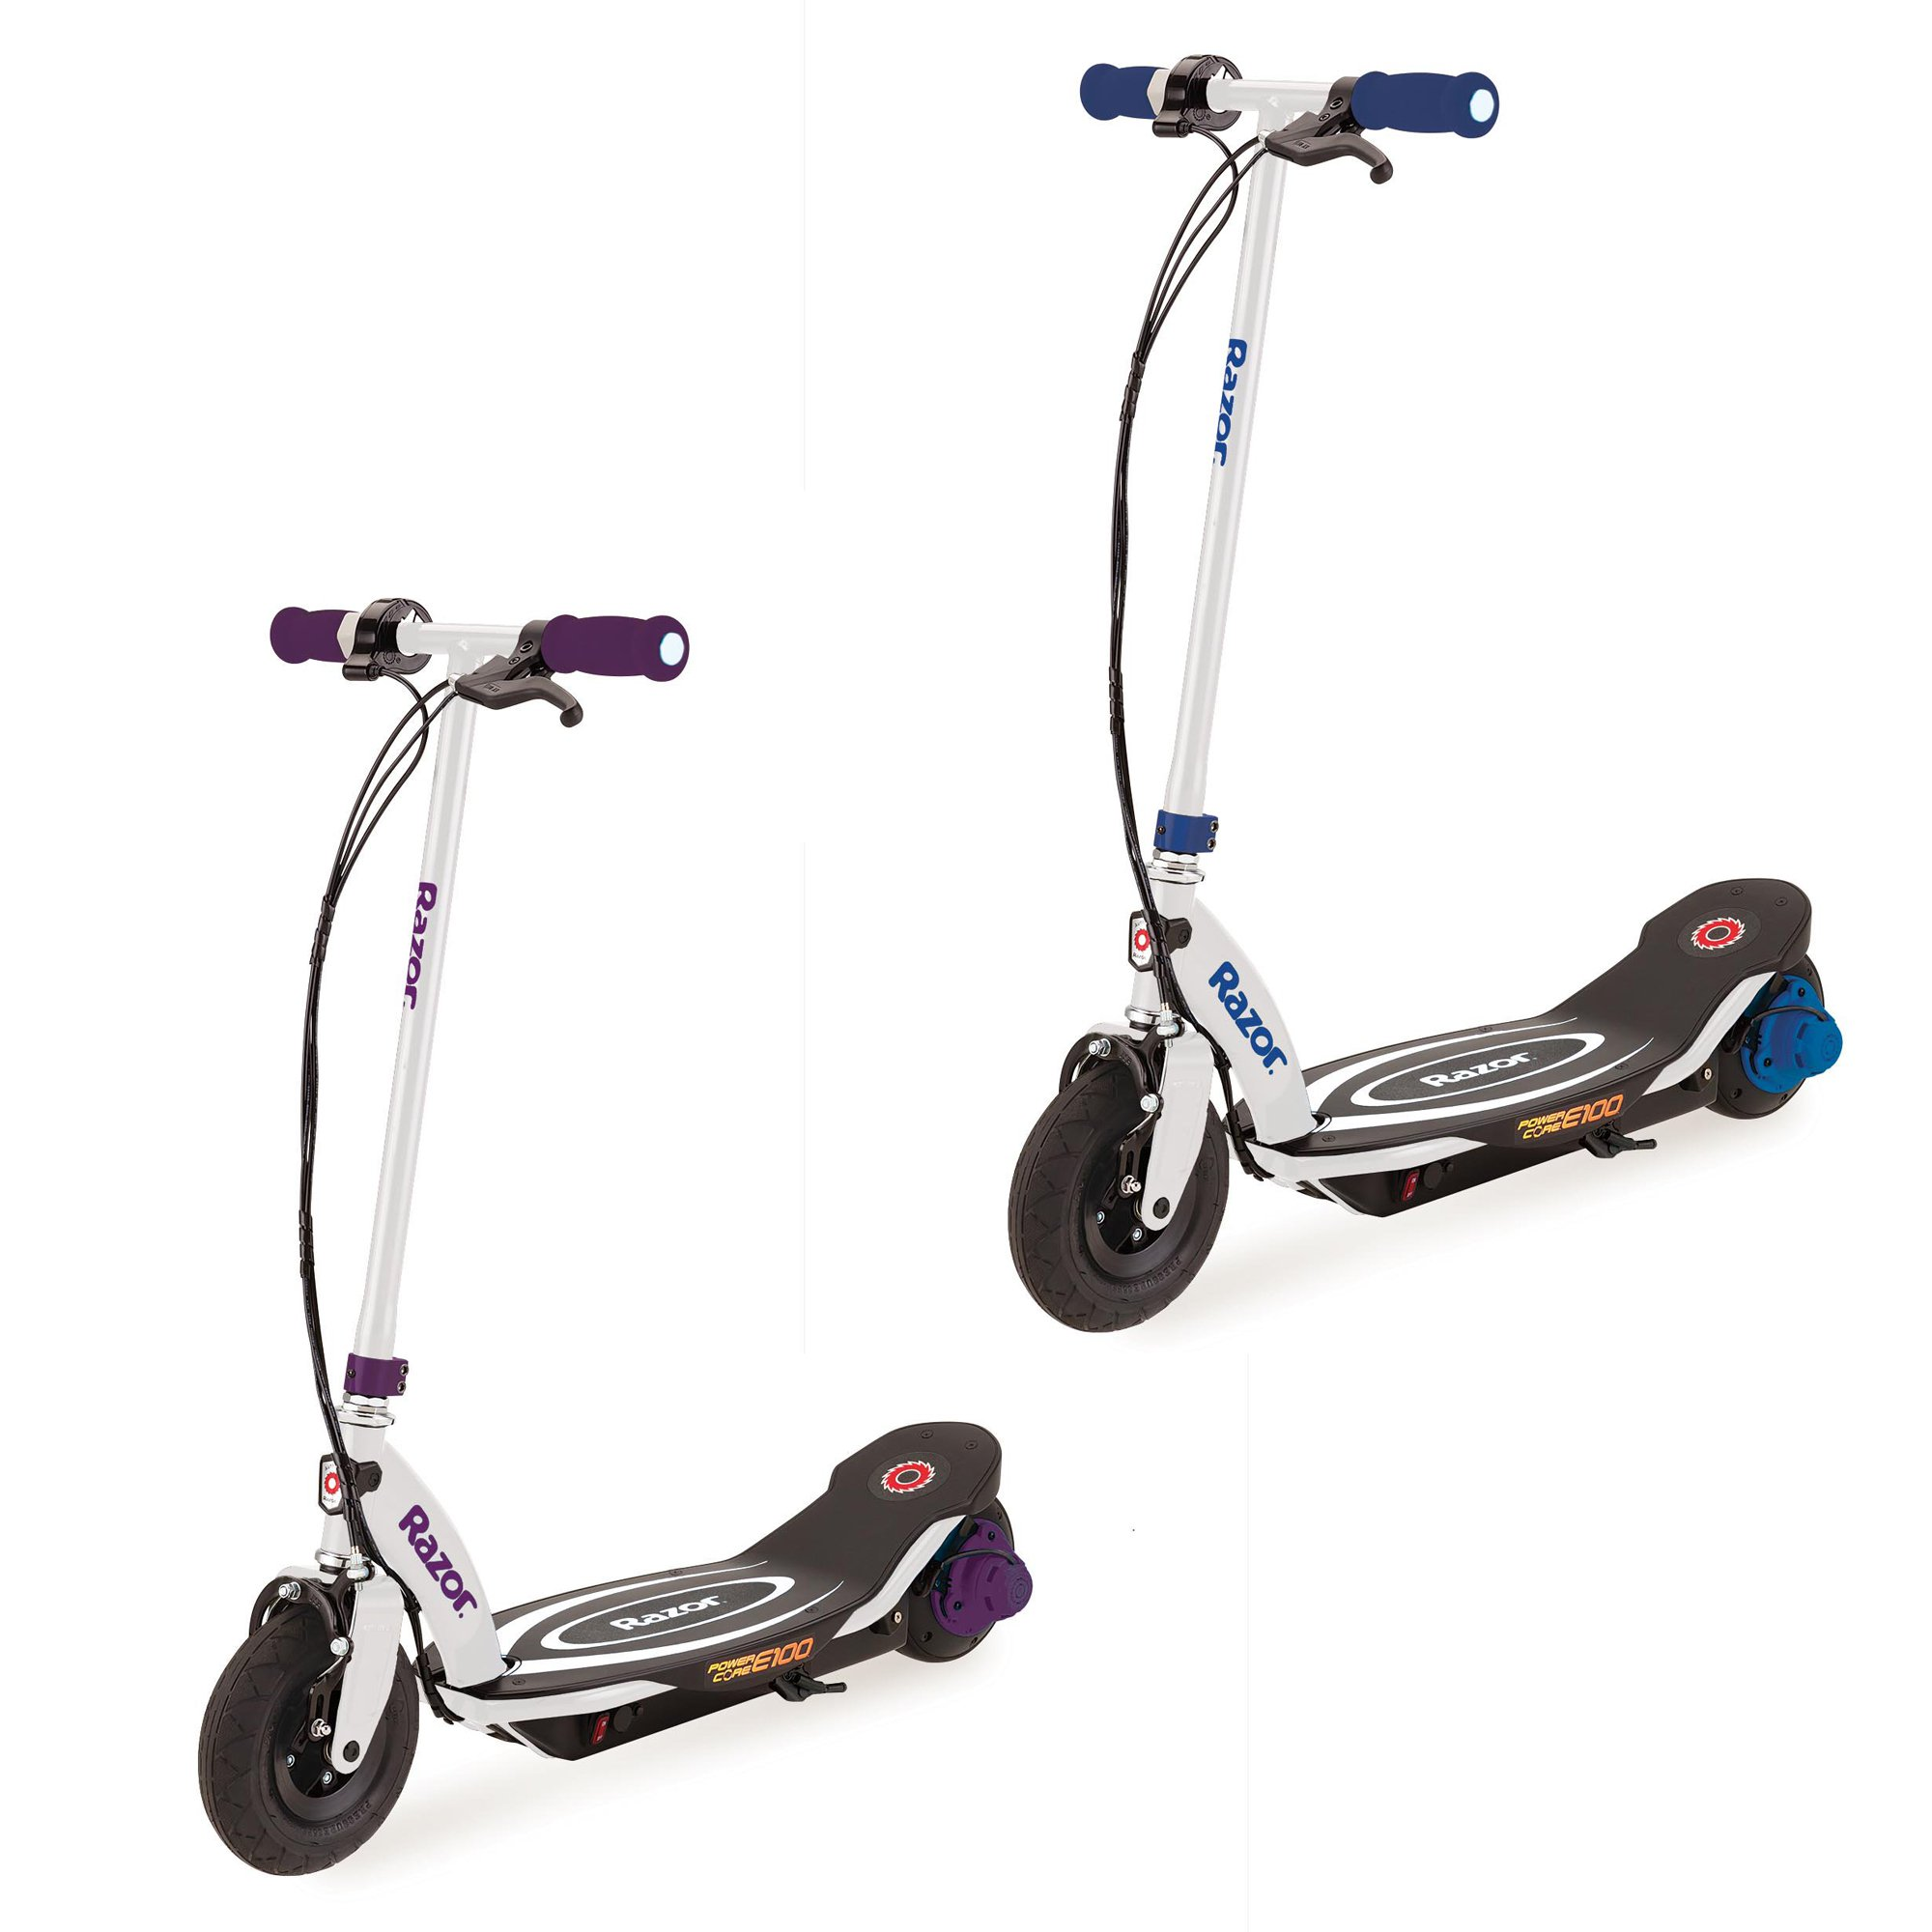 Razor Power Core E100 Electric Hub Motor Kids Toy Scooters, 1 Purple & 1 Blue